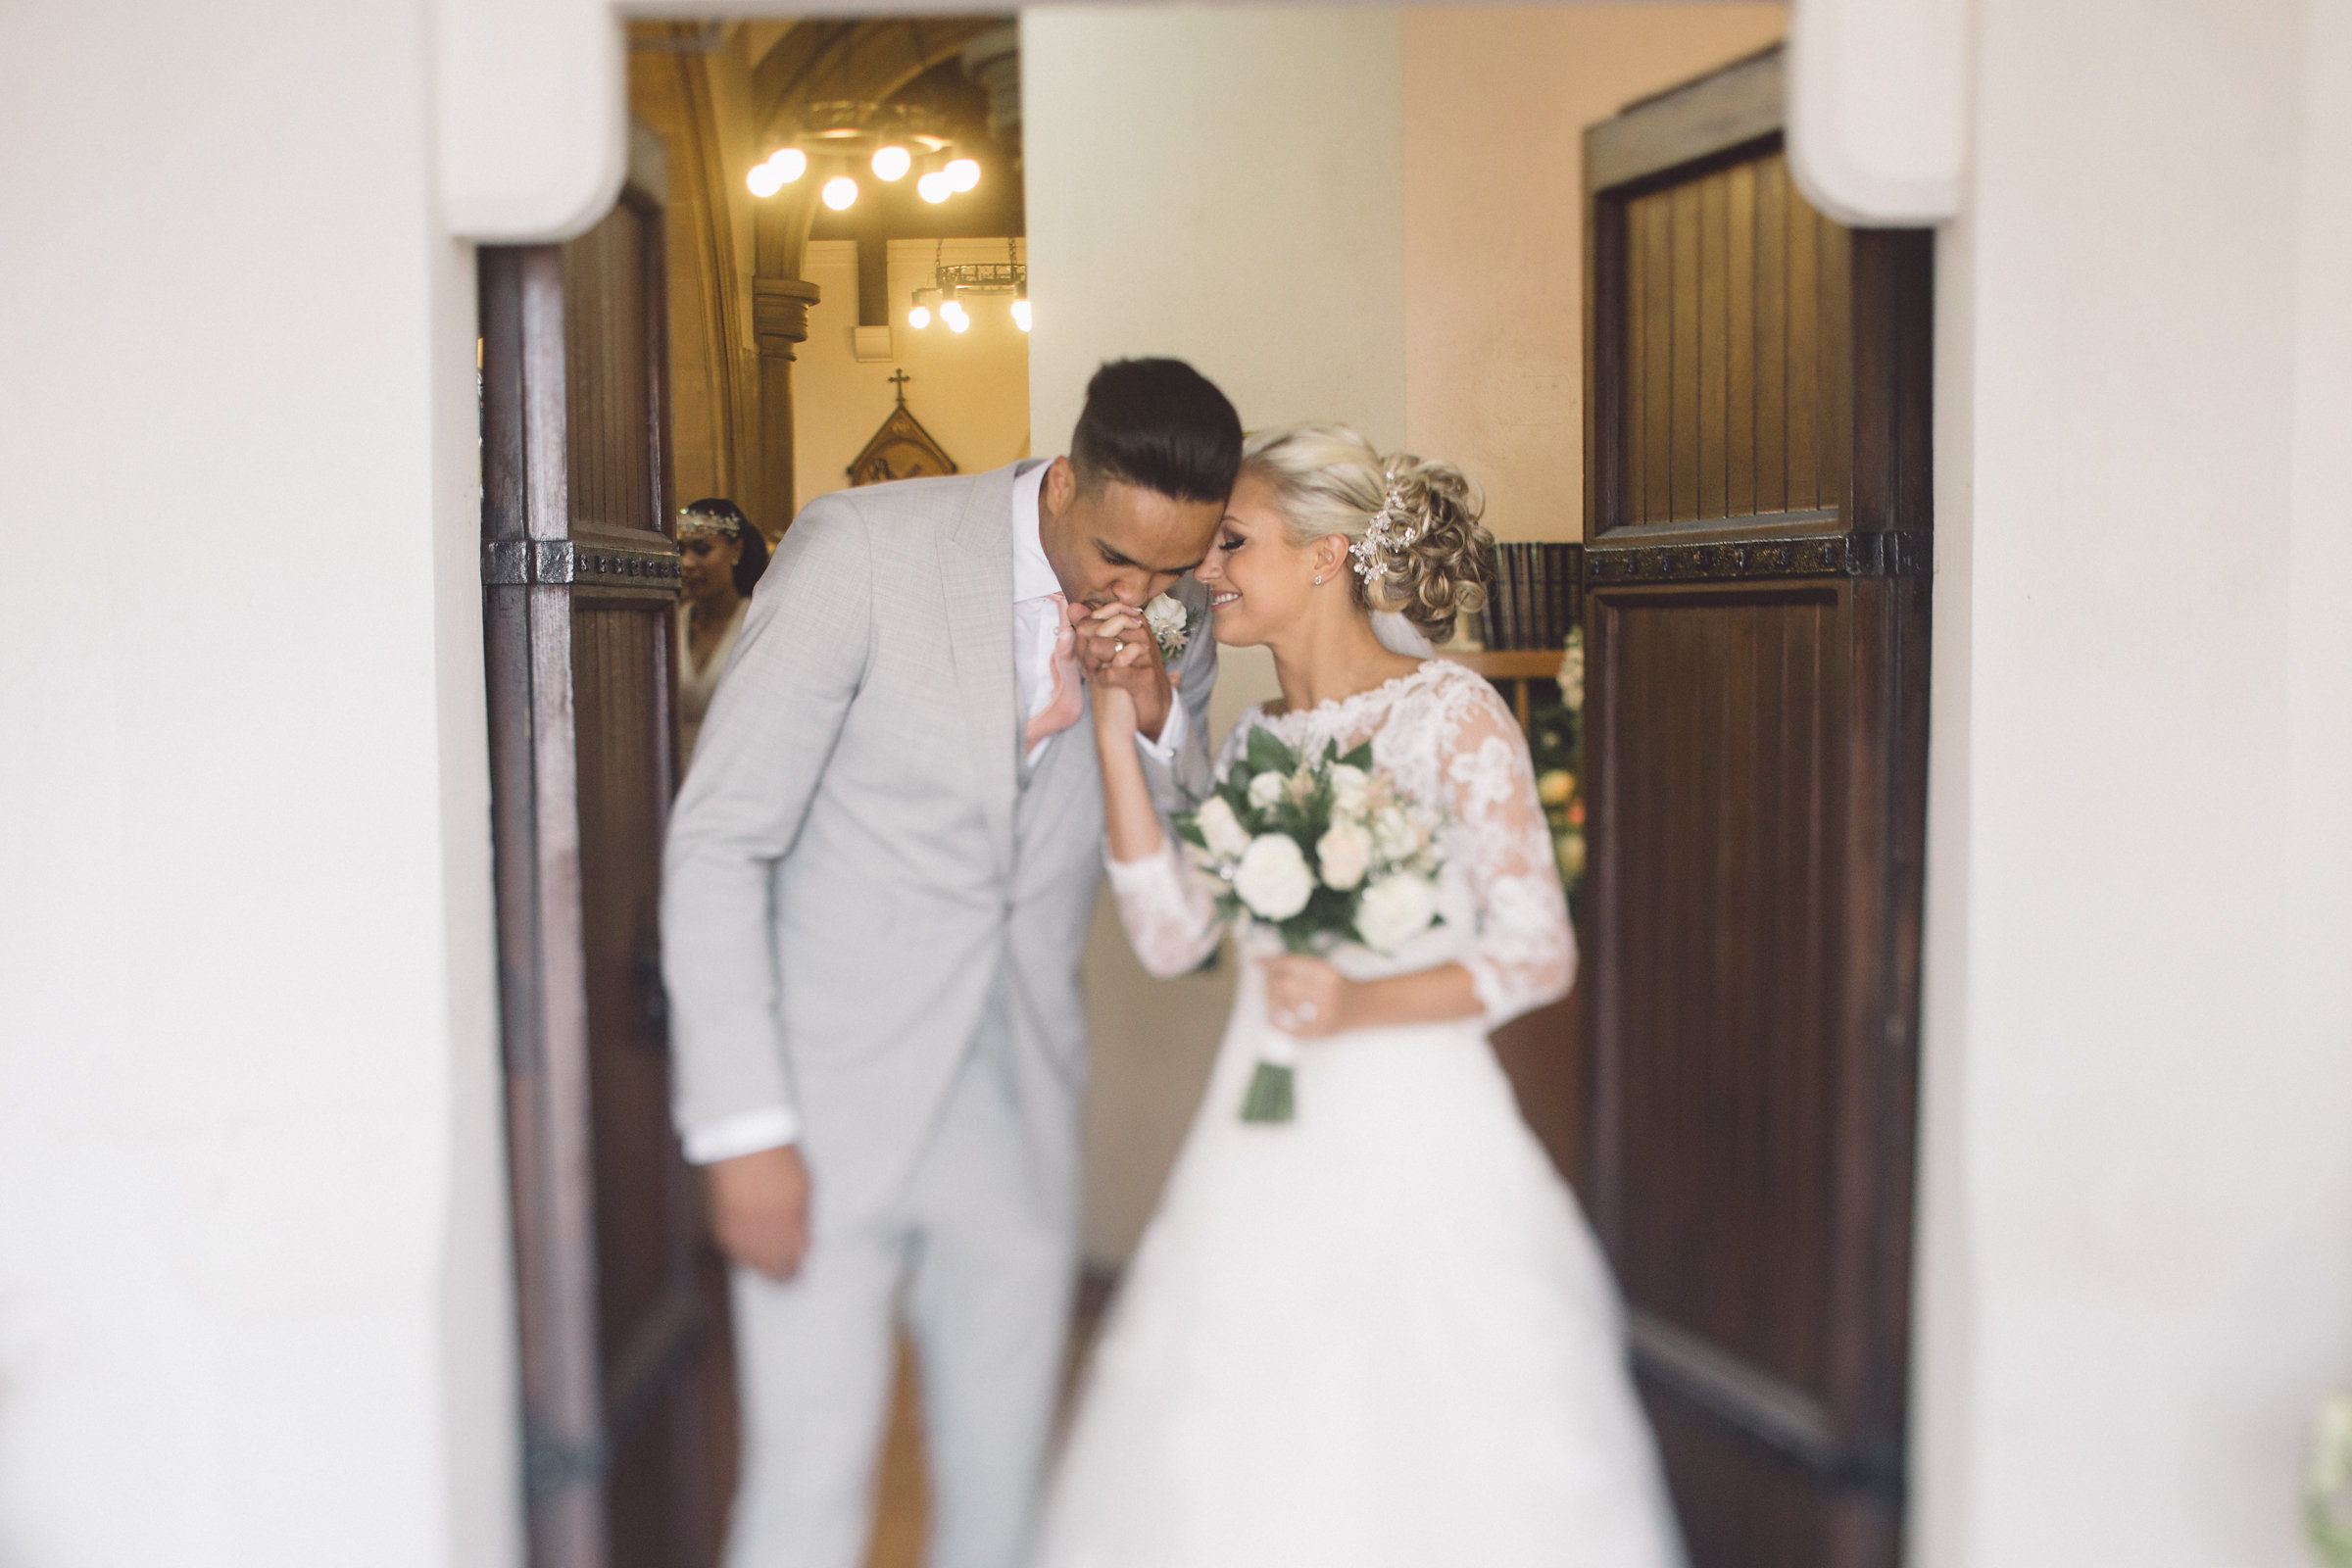 Ashley Banjo marry's Francesca Dutton craig george wedding photographer london